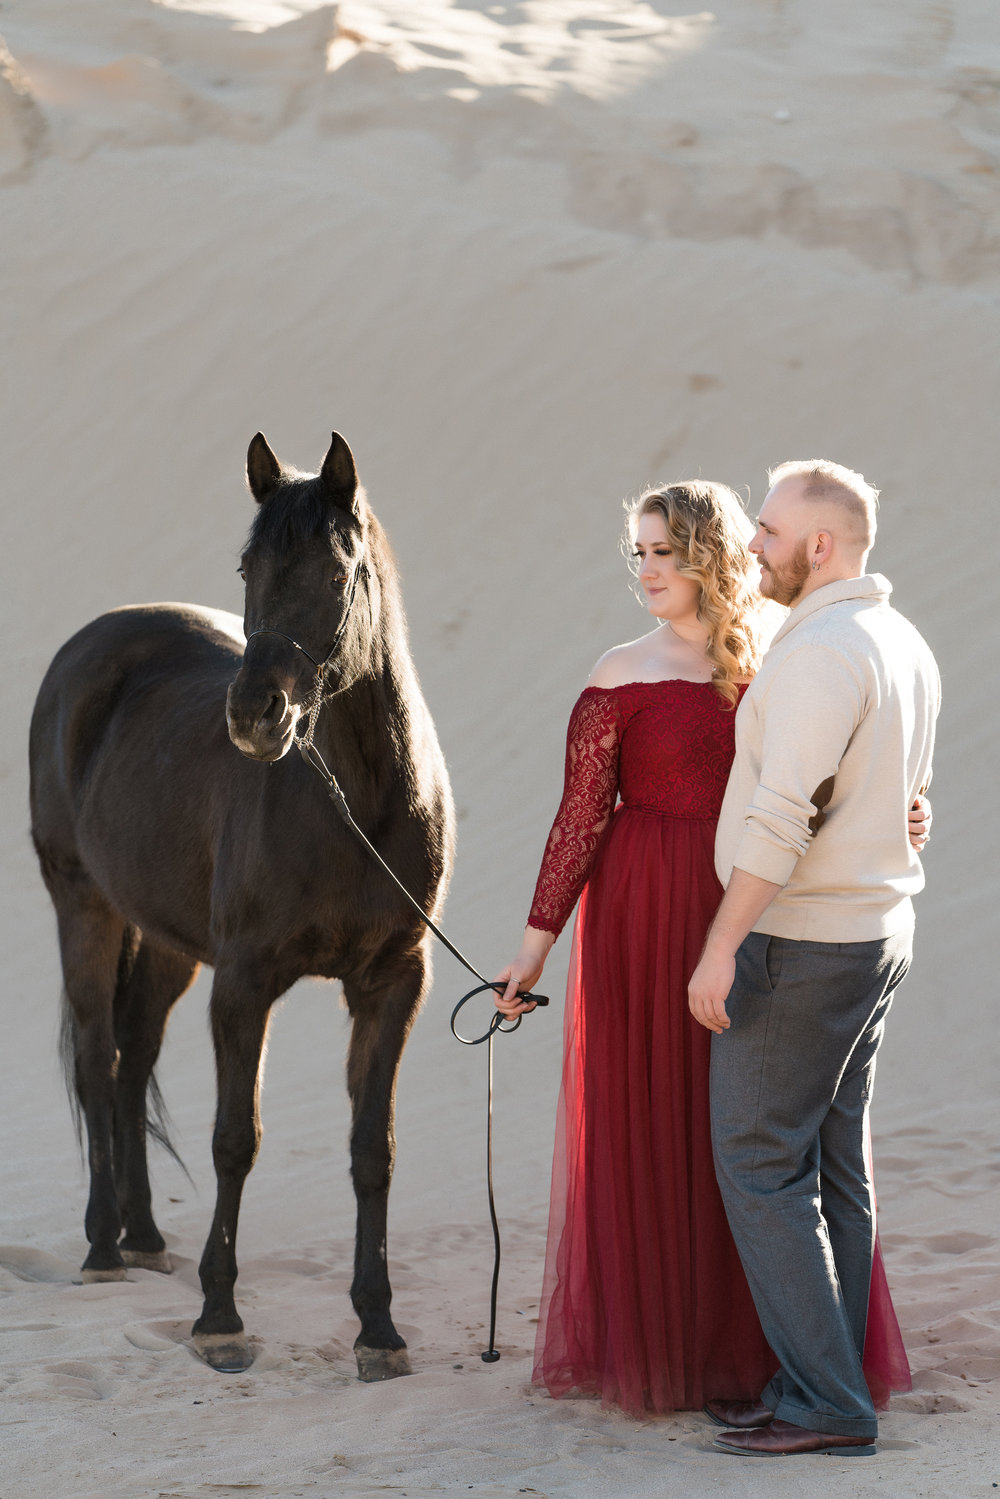 NewMexico-Sand-Dunes-Engagement-Carissa-and-Ben-1019.jpg